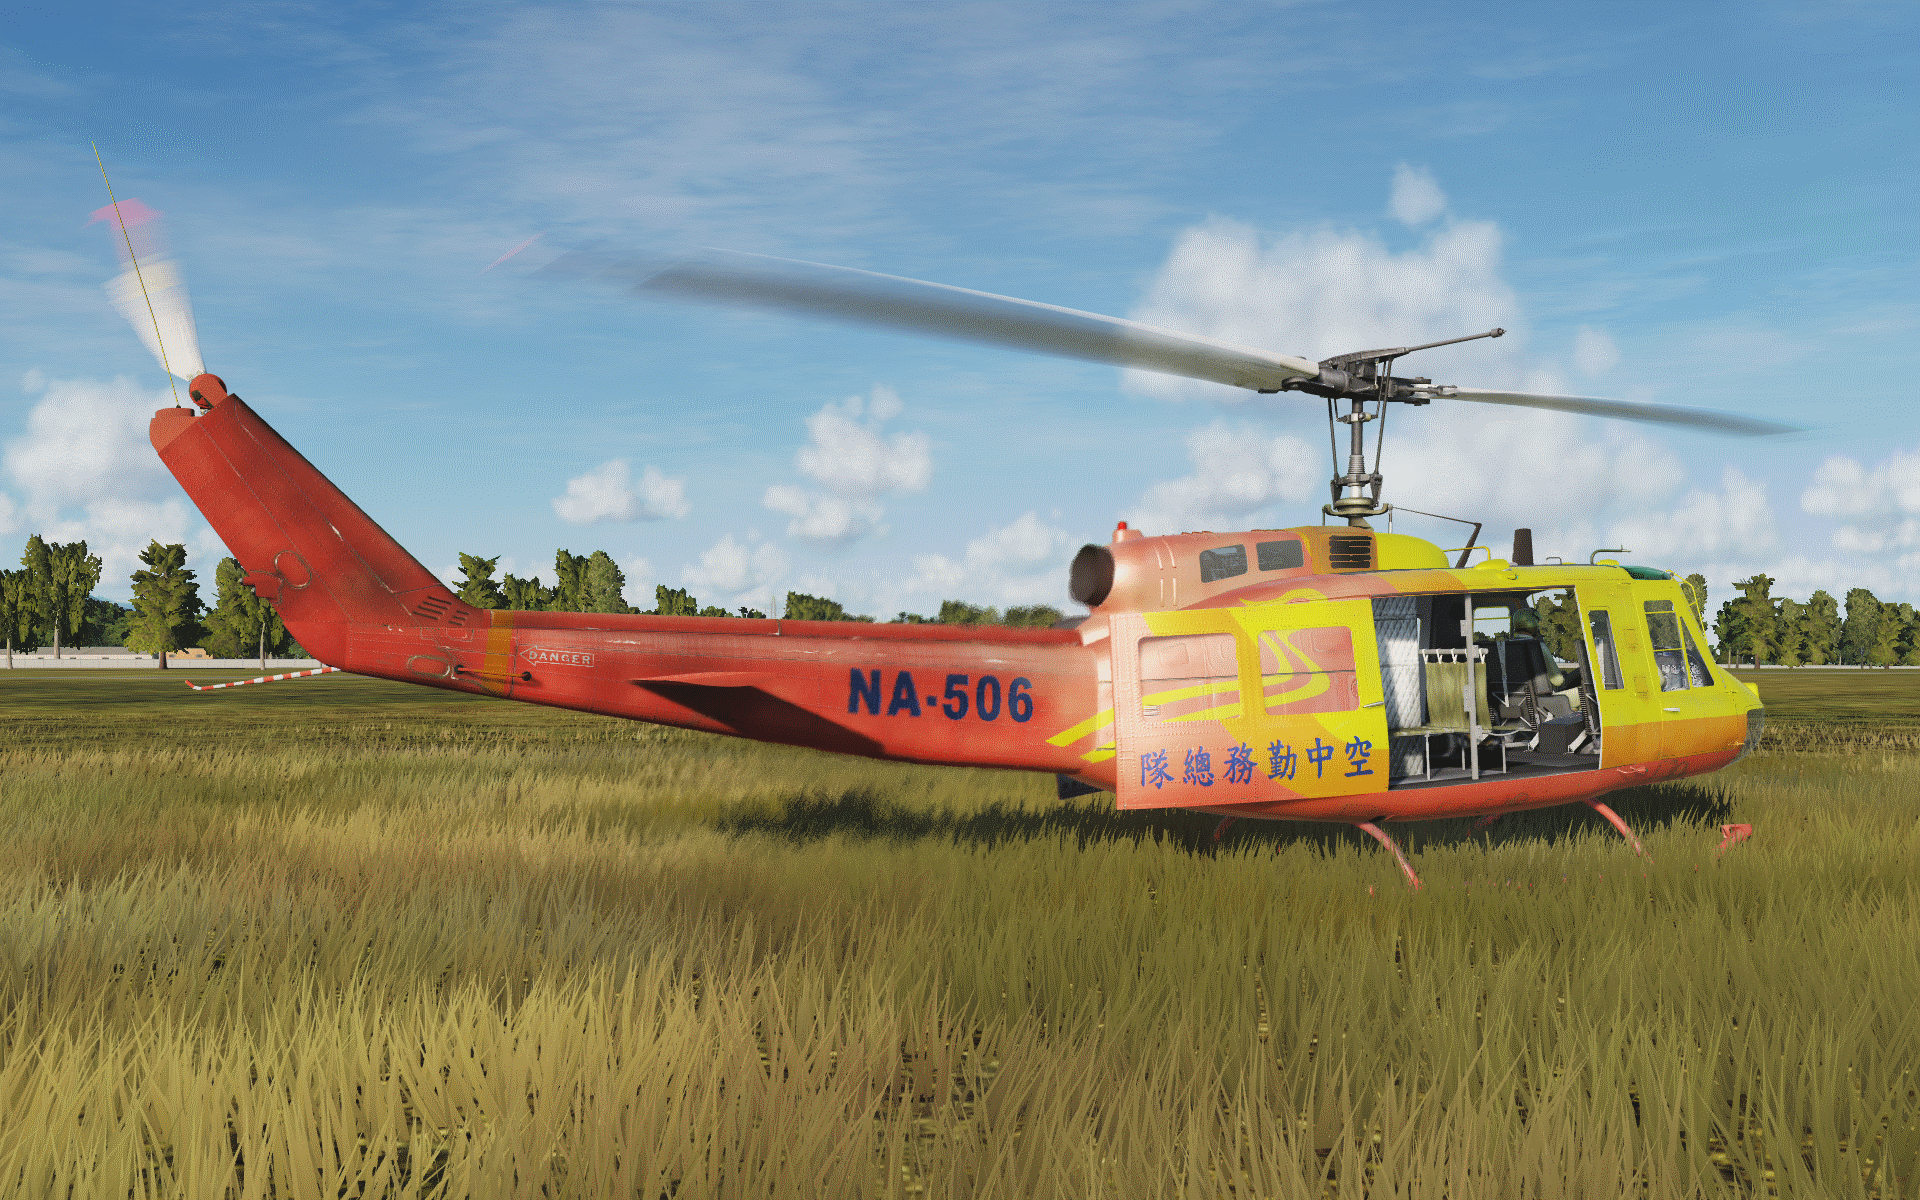 UH-1H Taiwan National Airborne Service Corps(NASC)